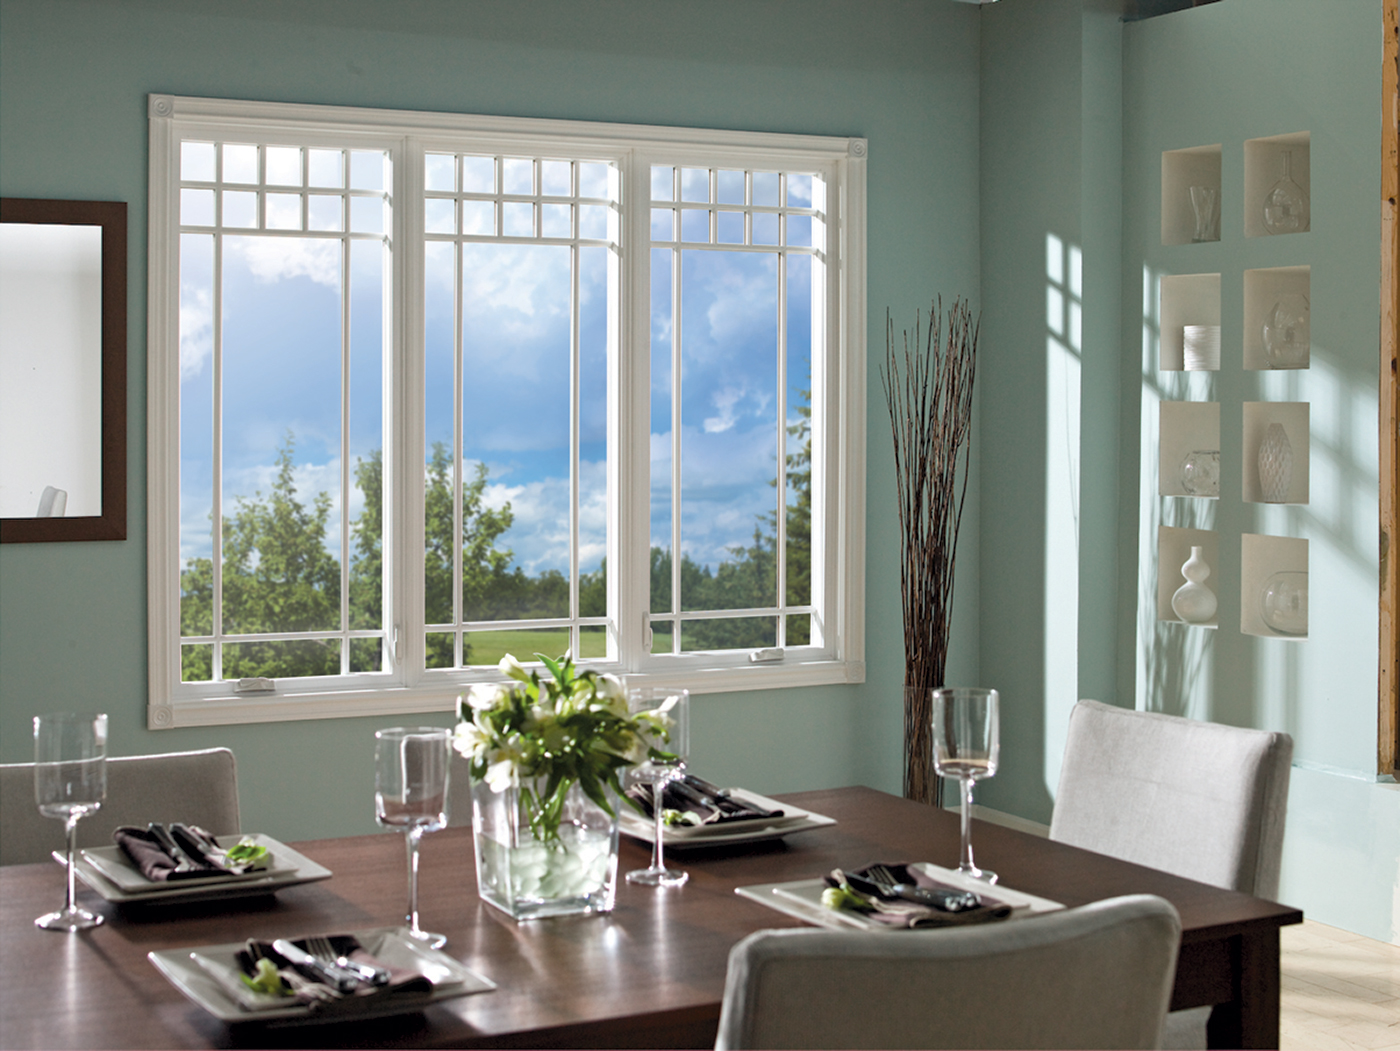 Steve\'s Windows and Doors - Open Your Windows To The World :: Windows